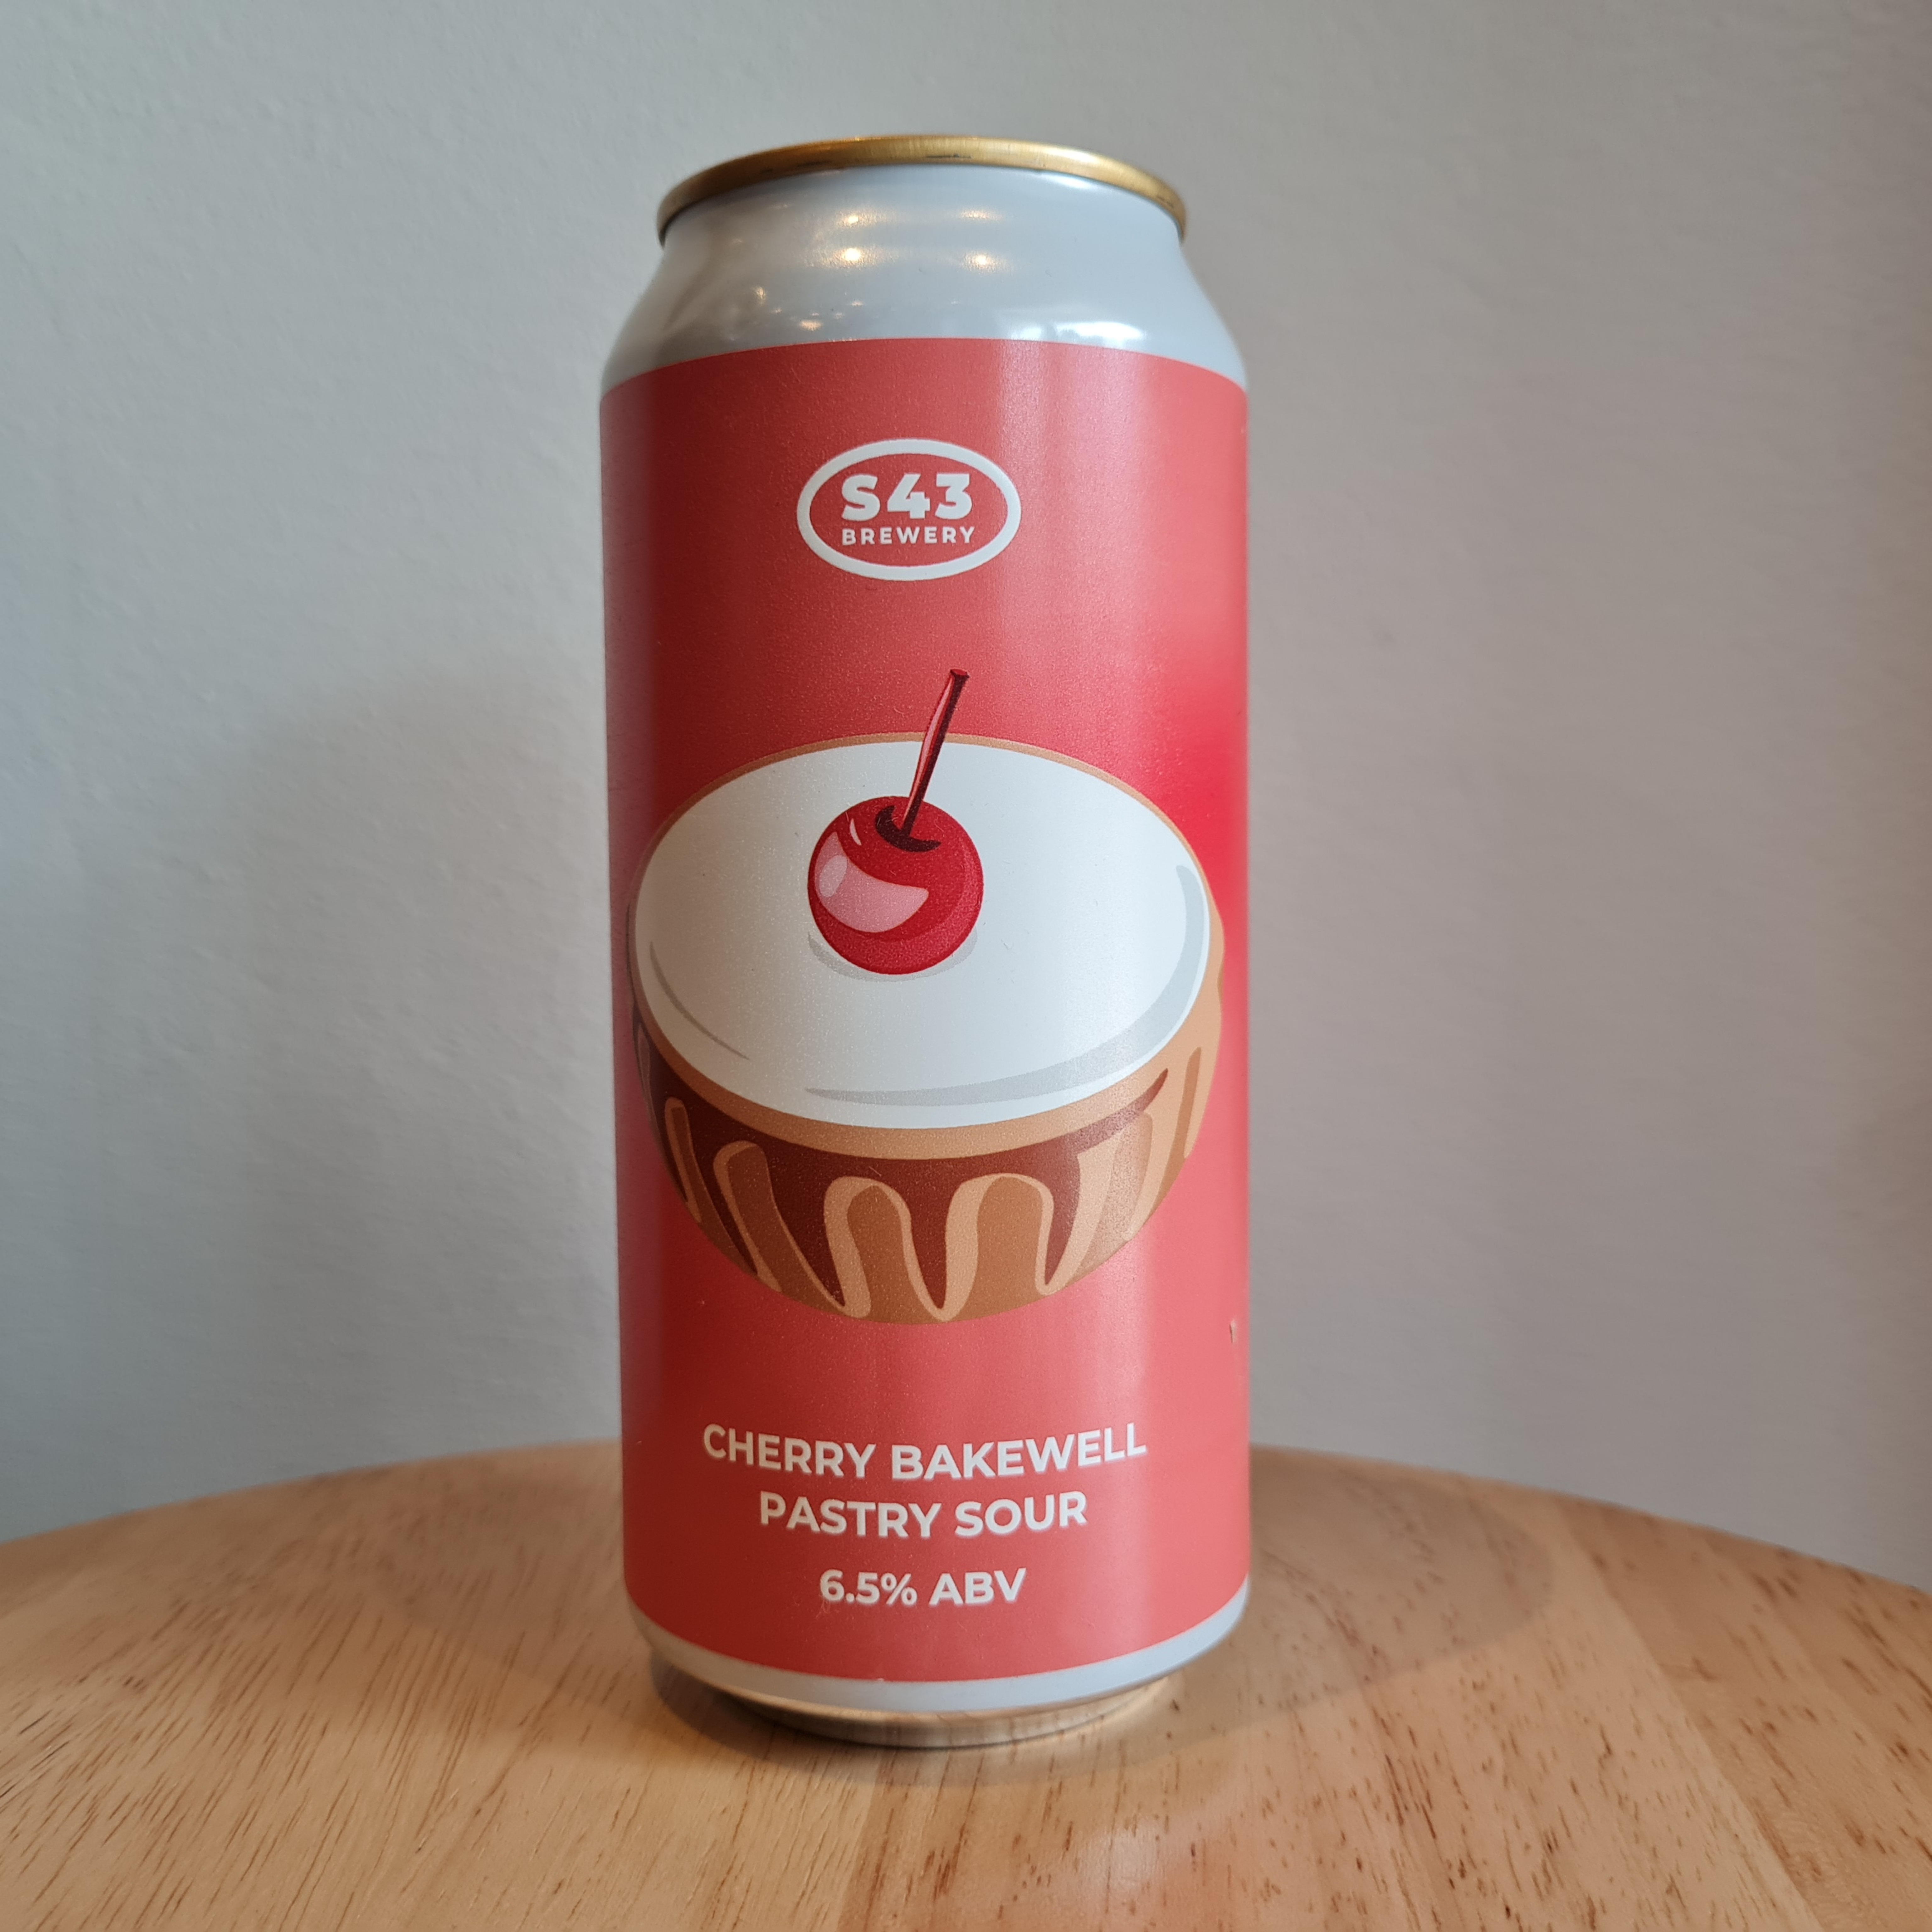 S43 Cherry Bakewell Pastry Sour